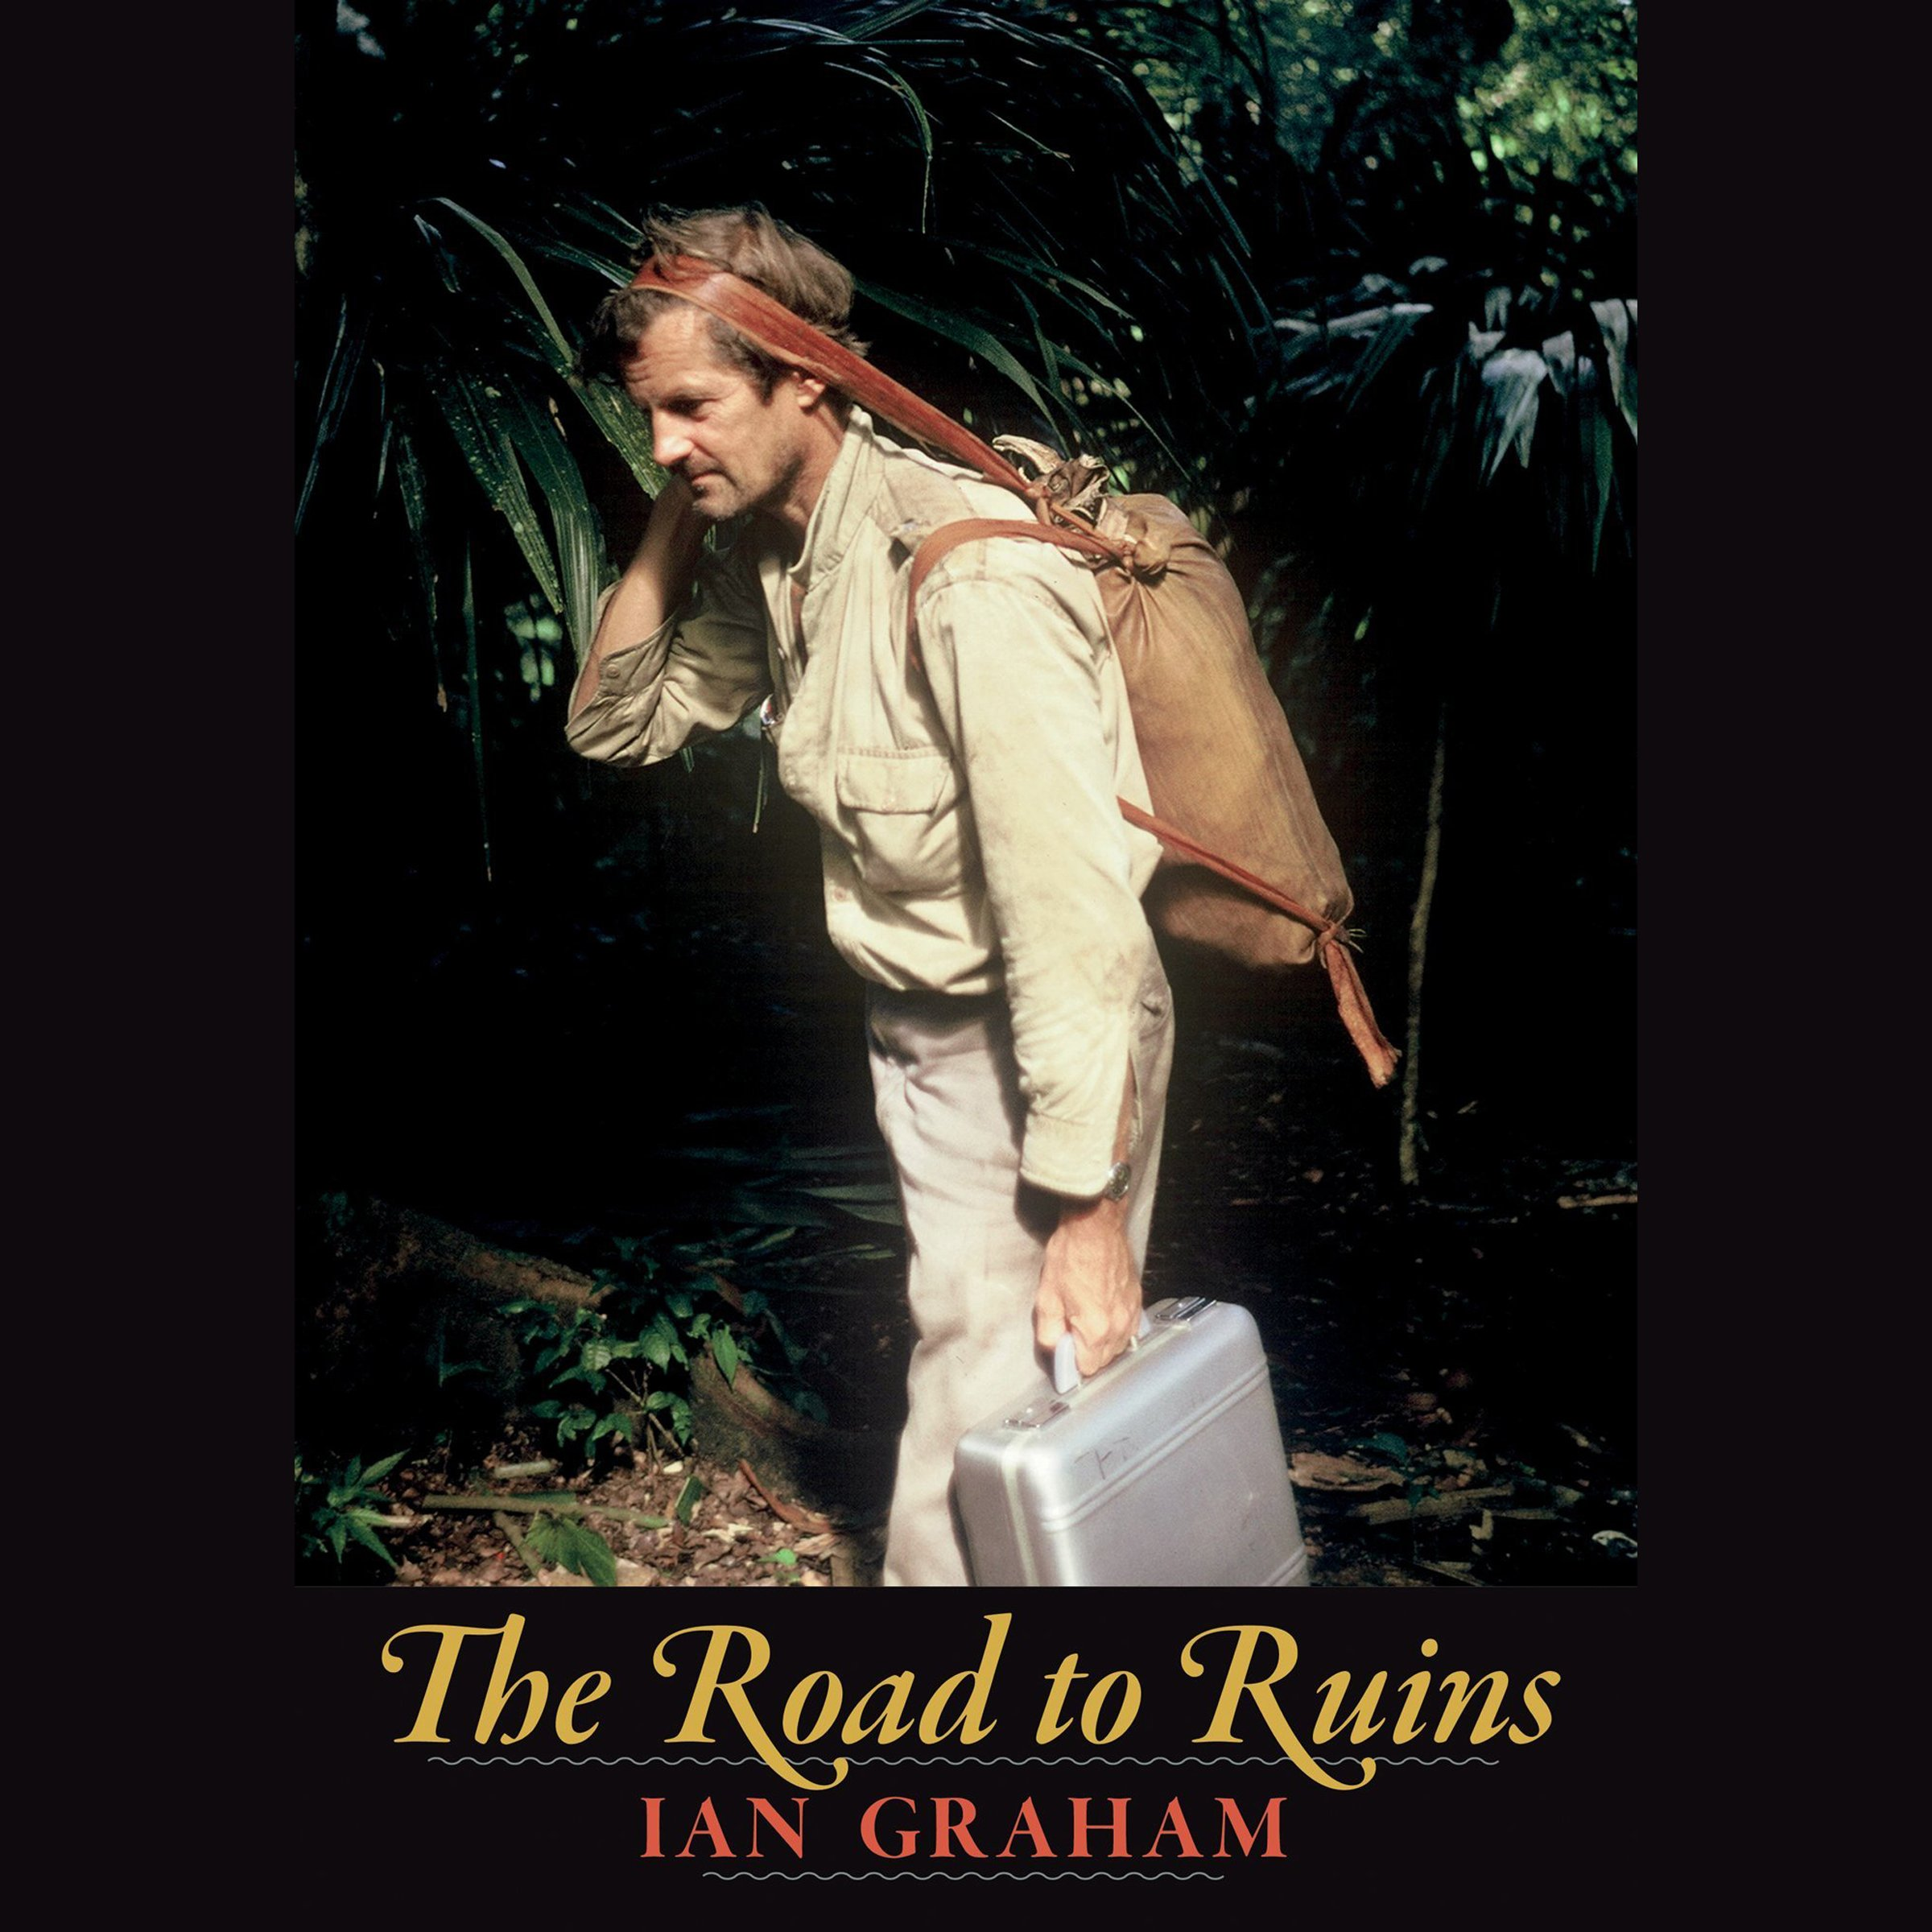 The Road to Ruins